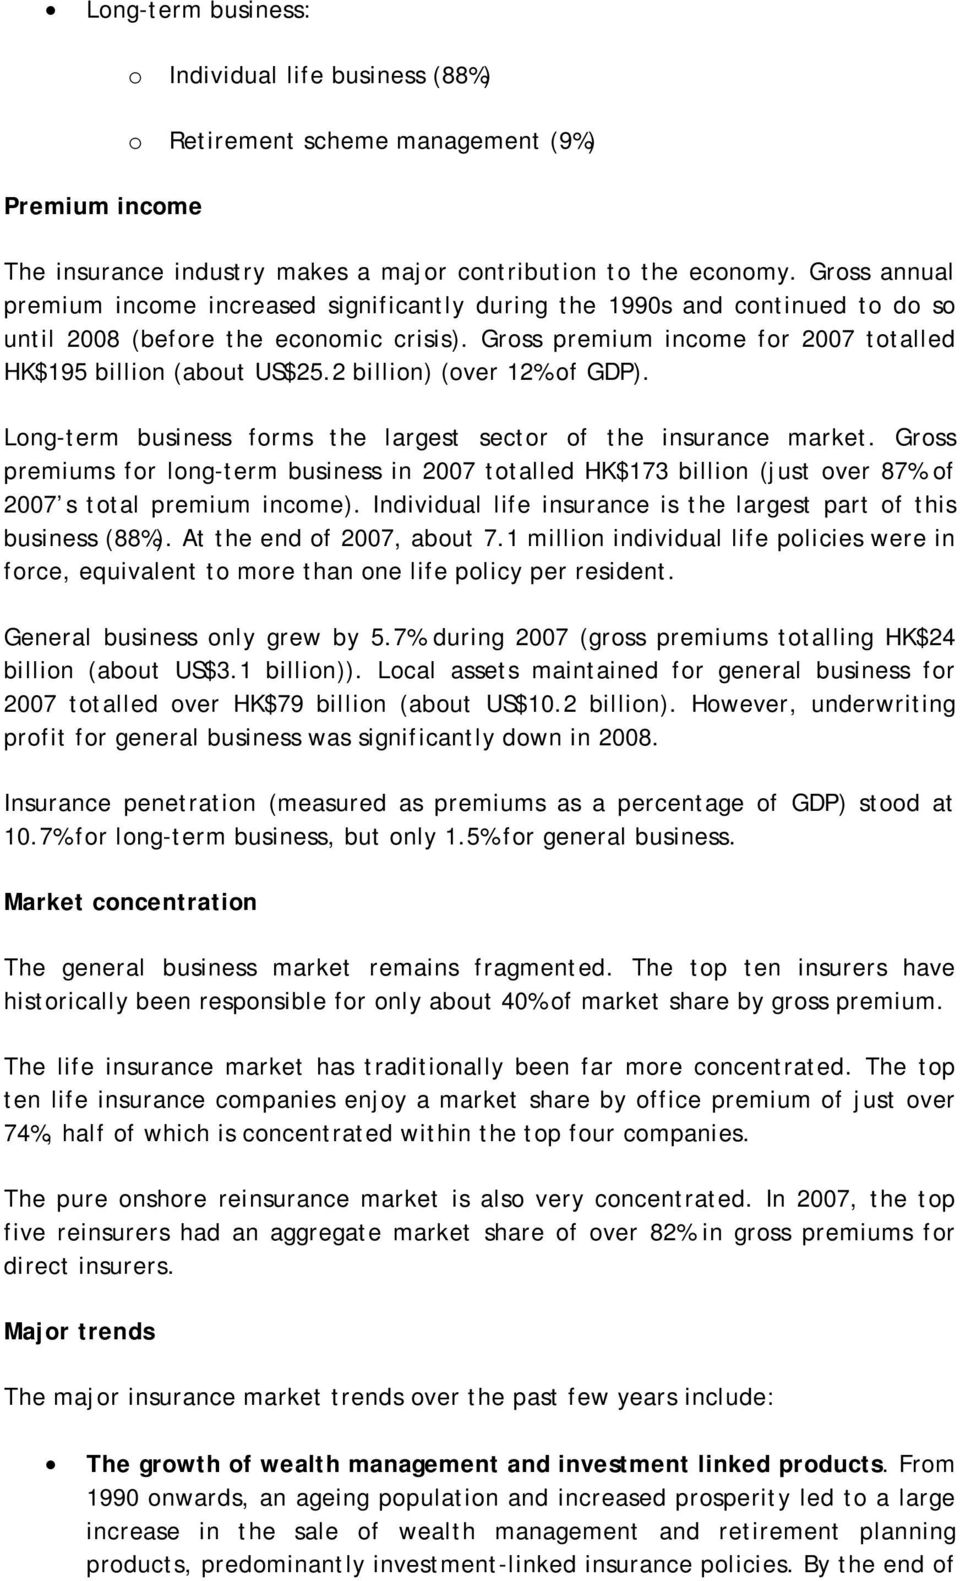 2 billin) (ver 12% f GDP). Lng-term business frms the largest sectr f the insurance market. Grss premiums fr lng-term business in 2007 ttalled HK$173 billin (just ver 87% f 2007 s ttal premium incme).